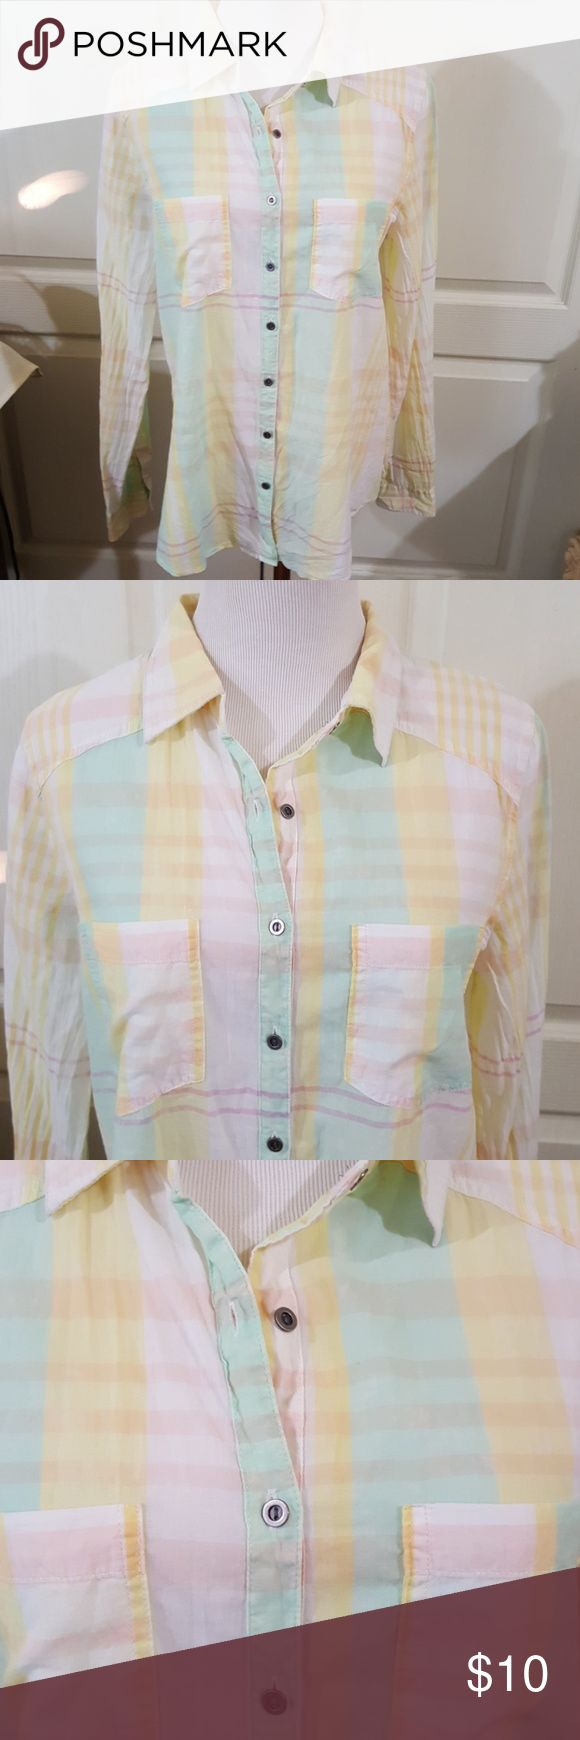 NWT Maurices Button Down Shirt. Sz. Medium Long sleeve button down by Maurices. It's new with tags but has a stain on it. See pic 6. I don't know what the stain is or if it will or won't come out. I haven't tried removing it. I didn't even notice it when I bought it. Lightweight and soft. Pretty pastel colors. Size Medium. Maurices Tops Button Down Shirts